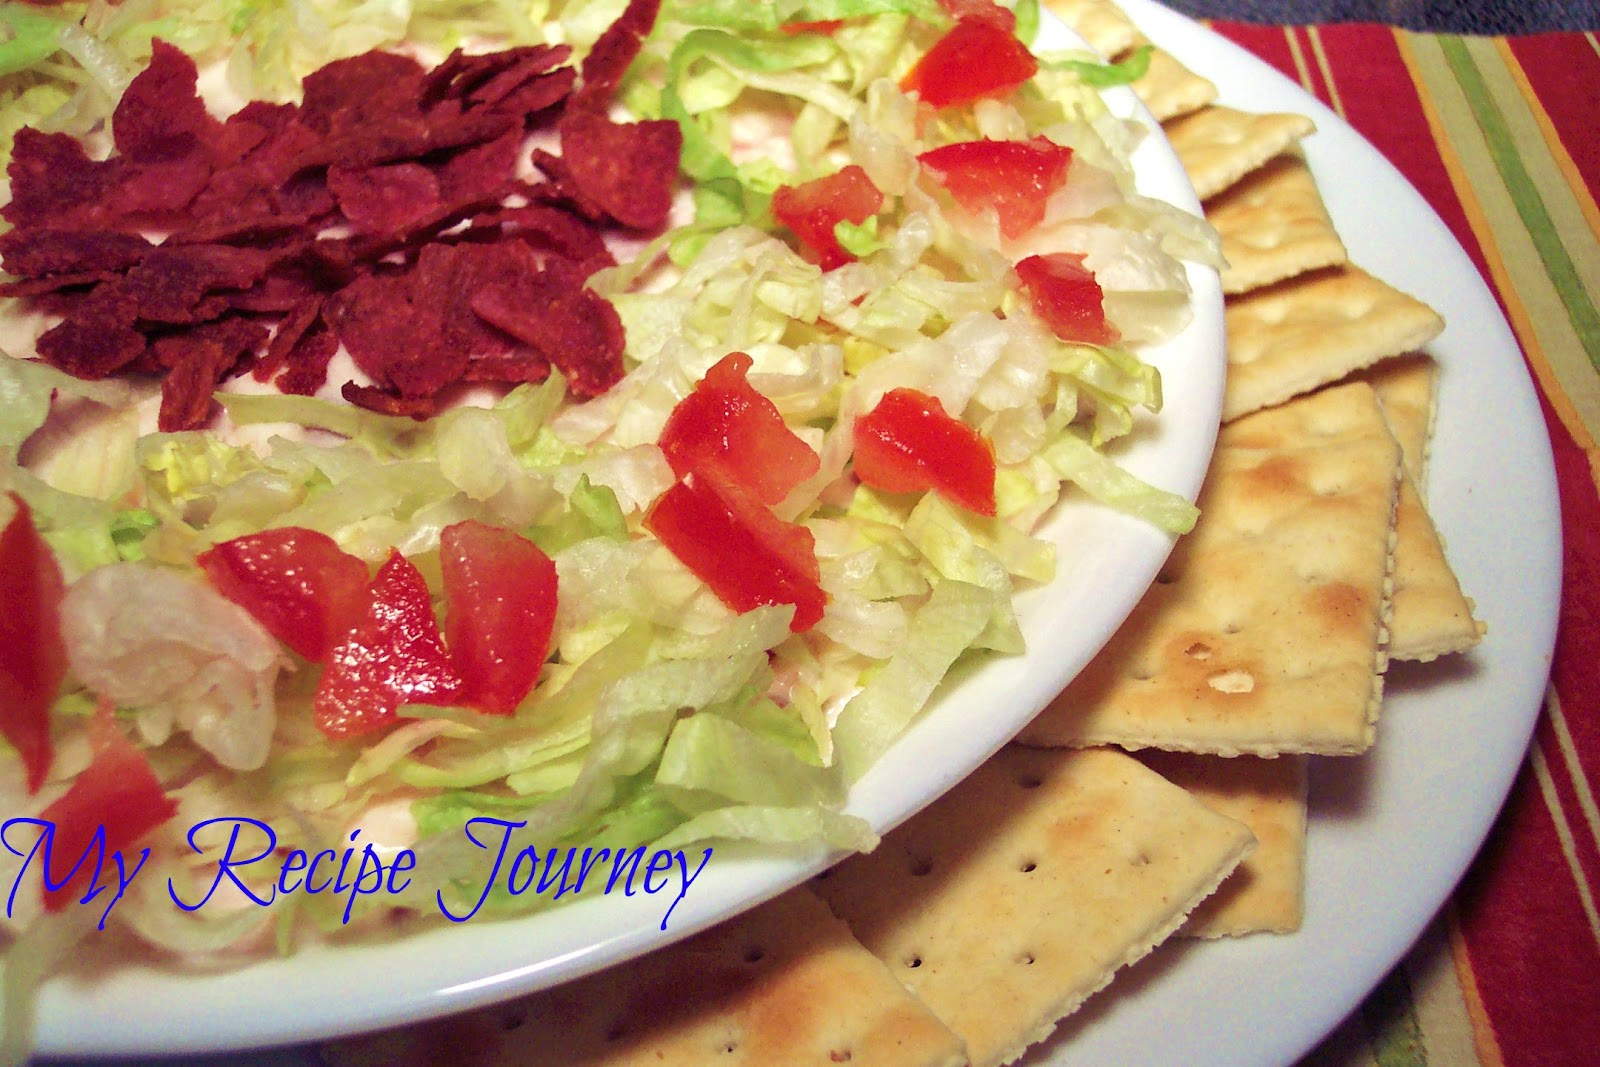 My Recipe Journey: BLT Dip...My New Favorite Dip! And Low Fat Too!